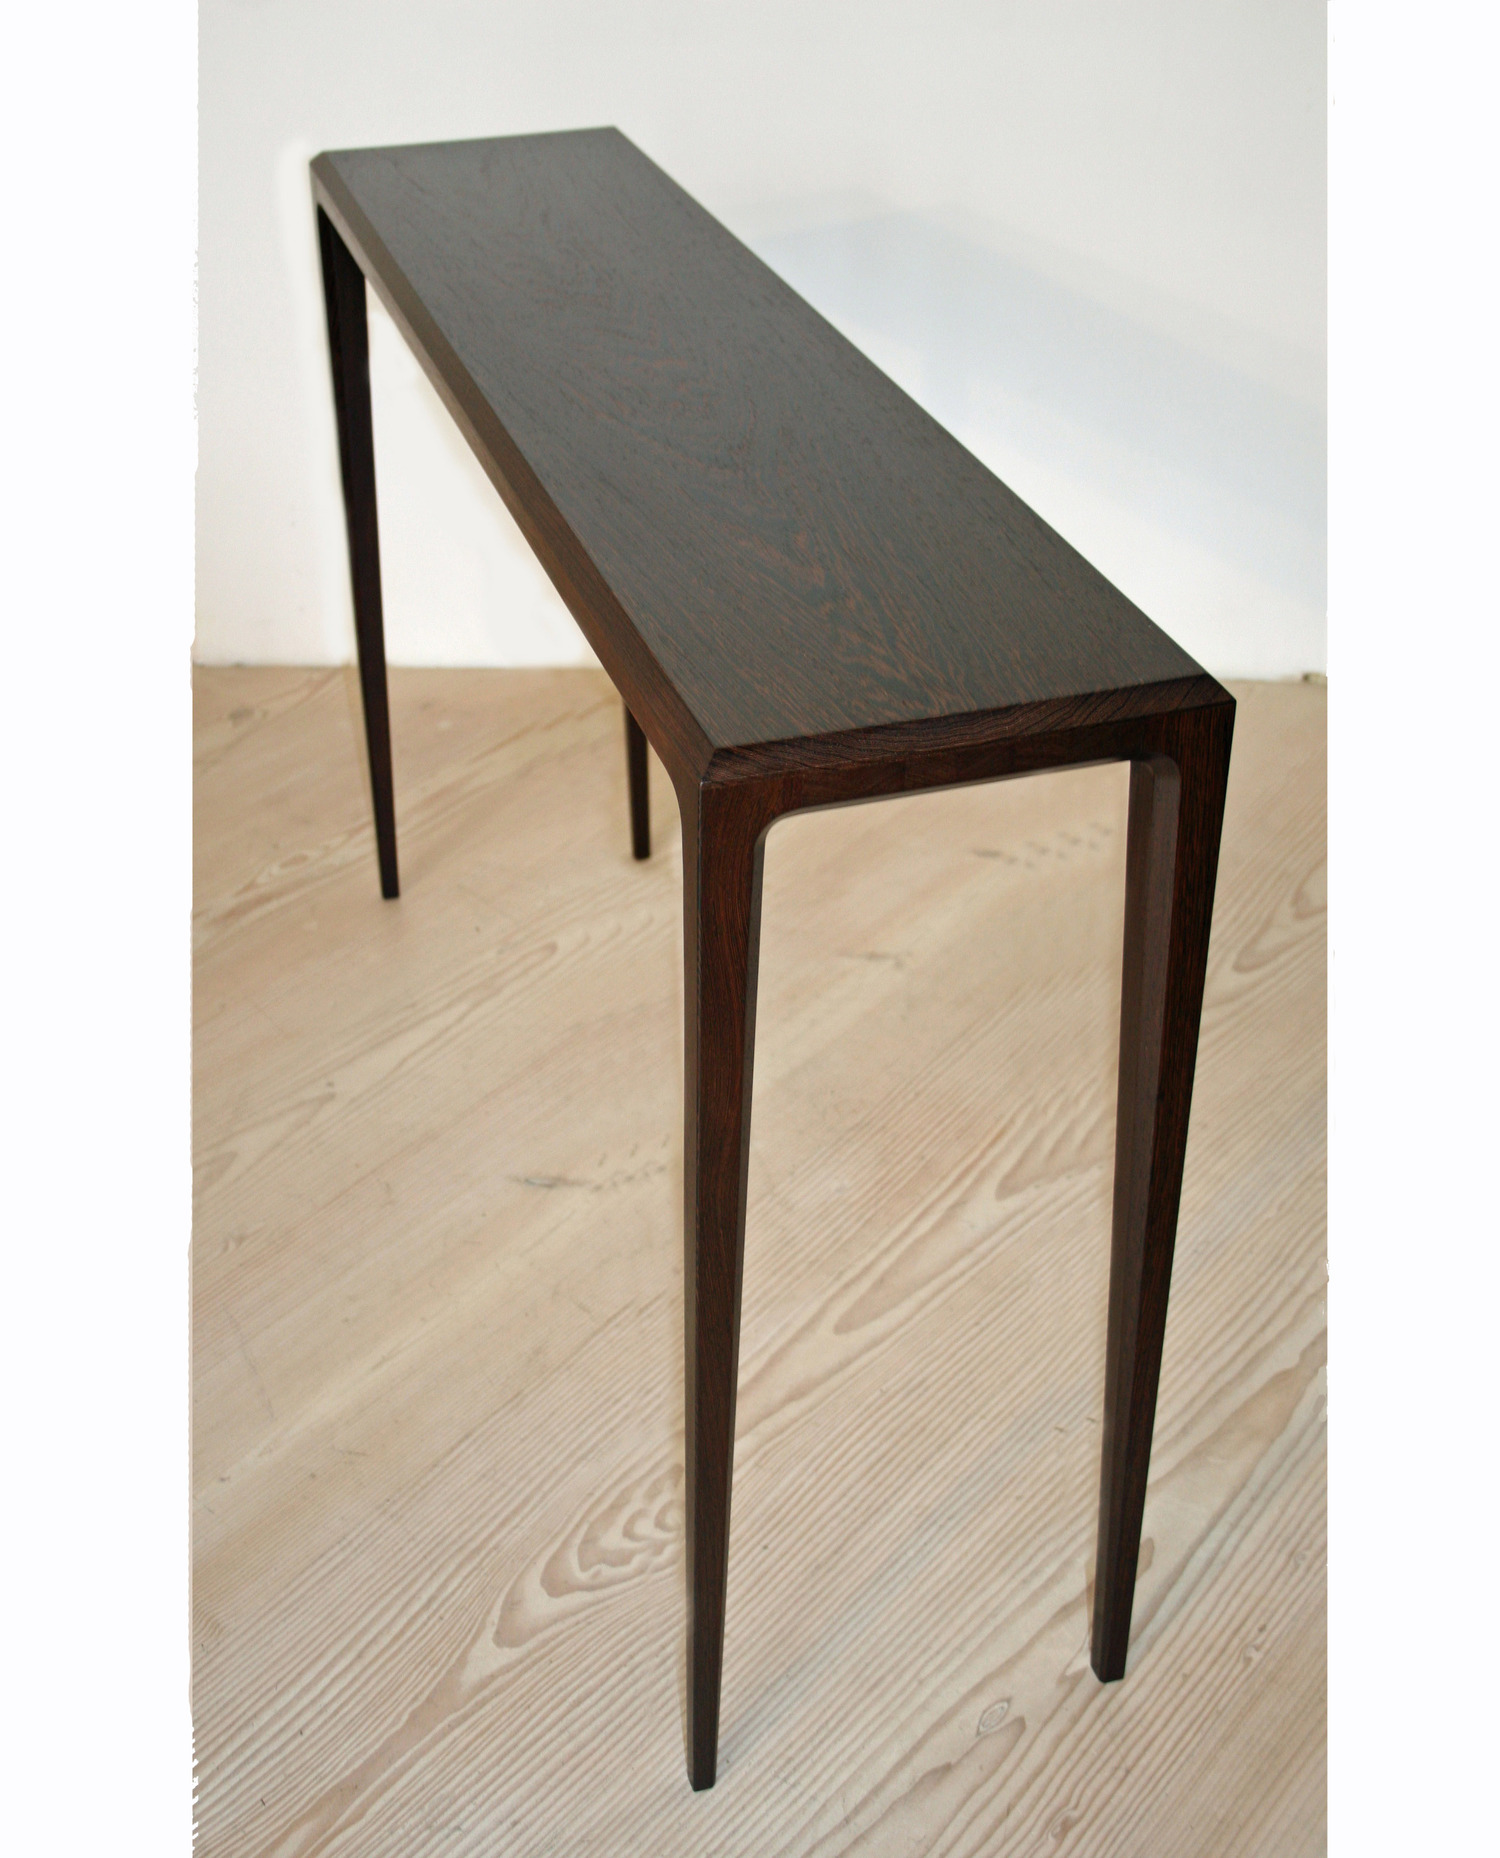 Pd 60 console table in solid wenge